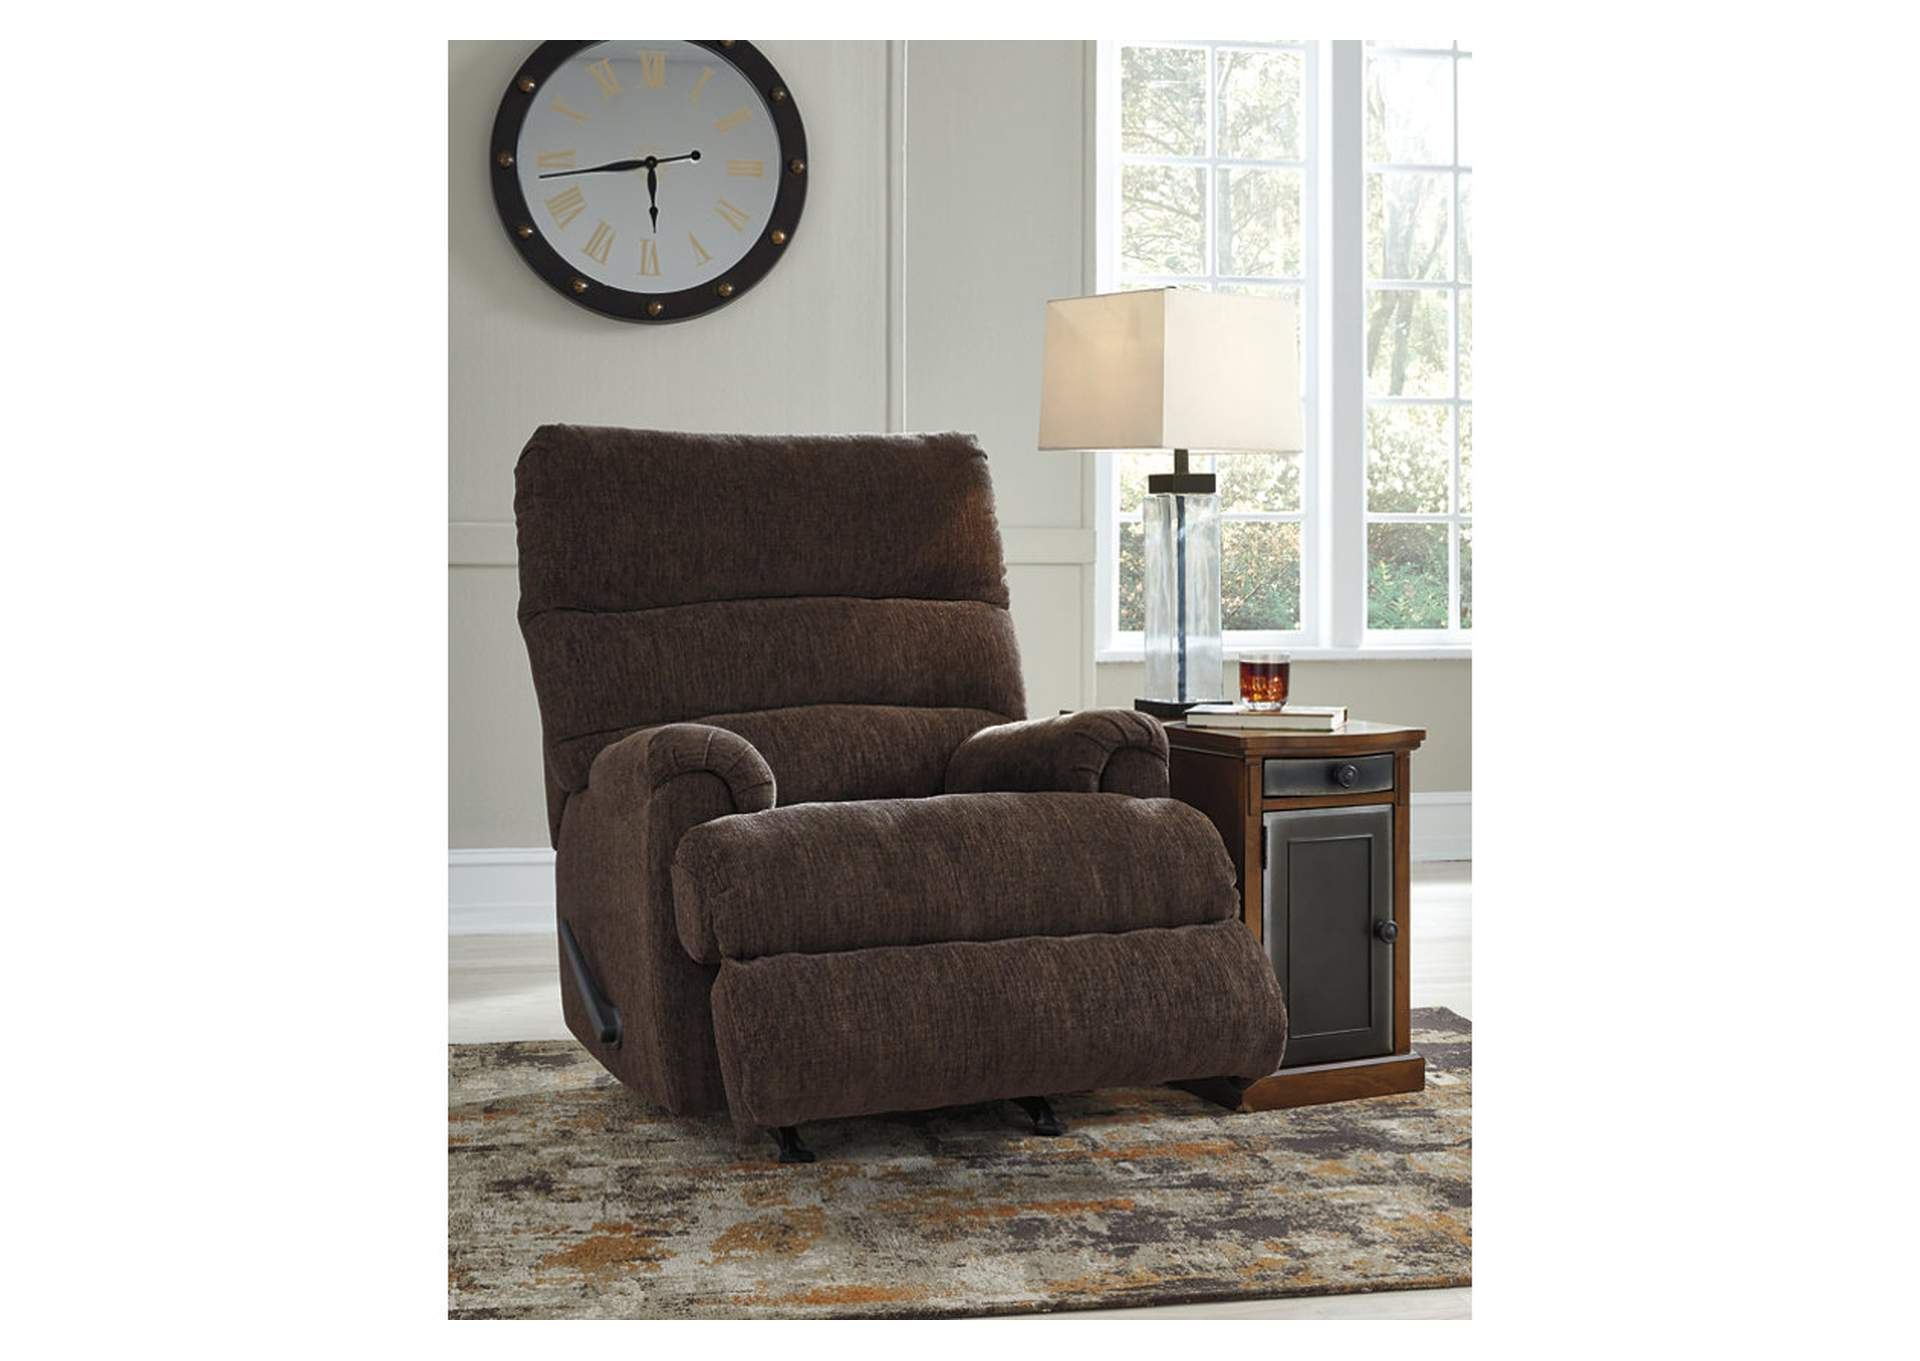 Man Fort Brown Recliner,Signature Design By Ashley